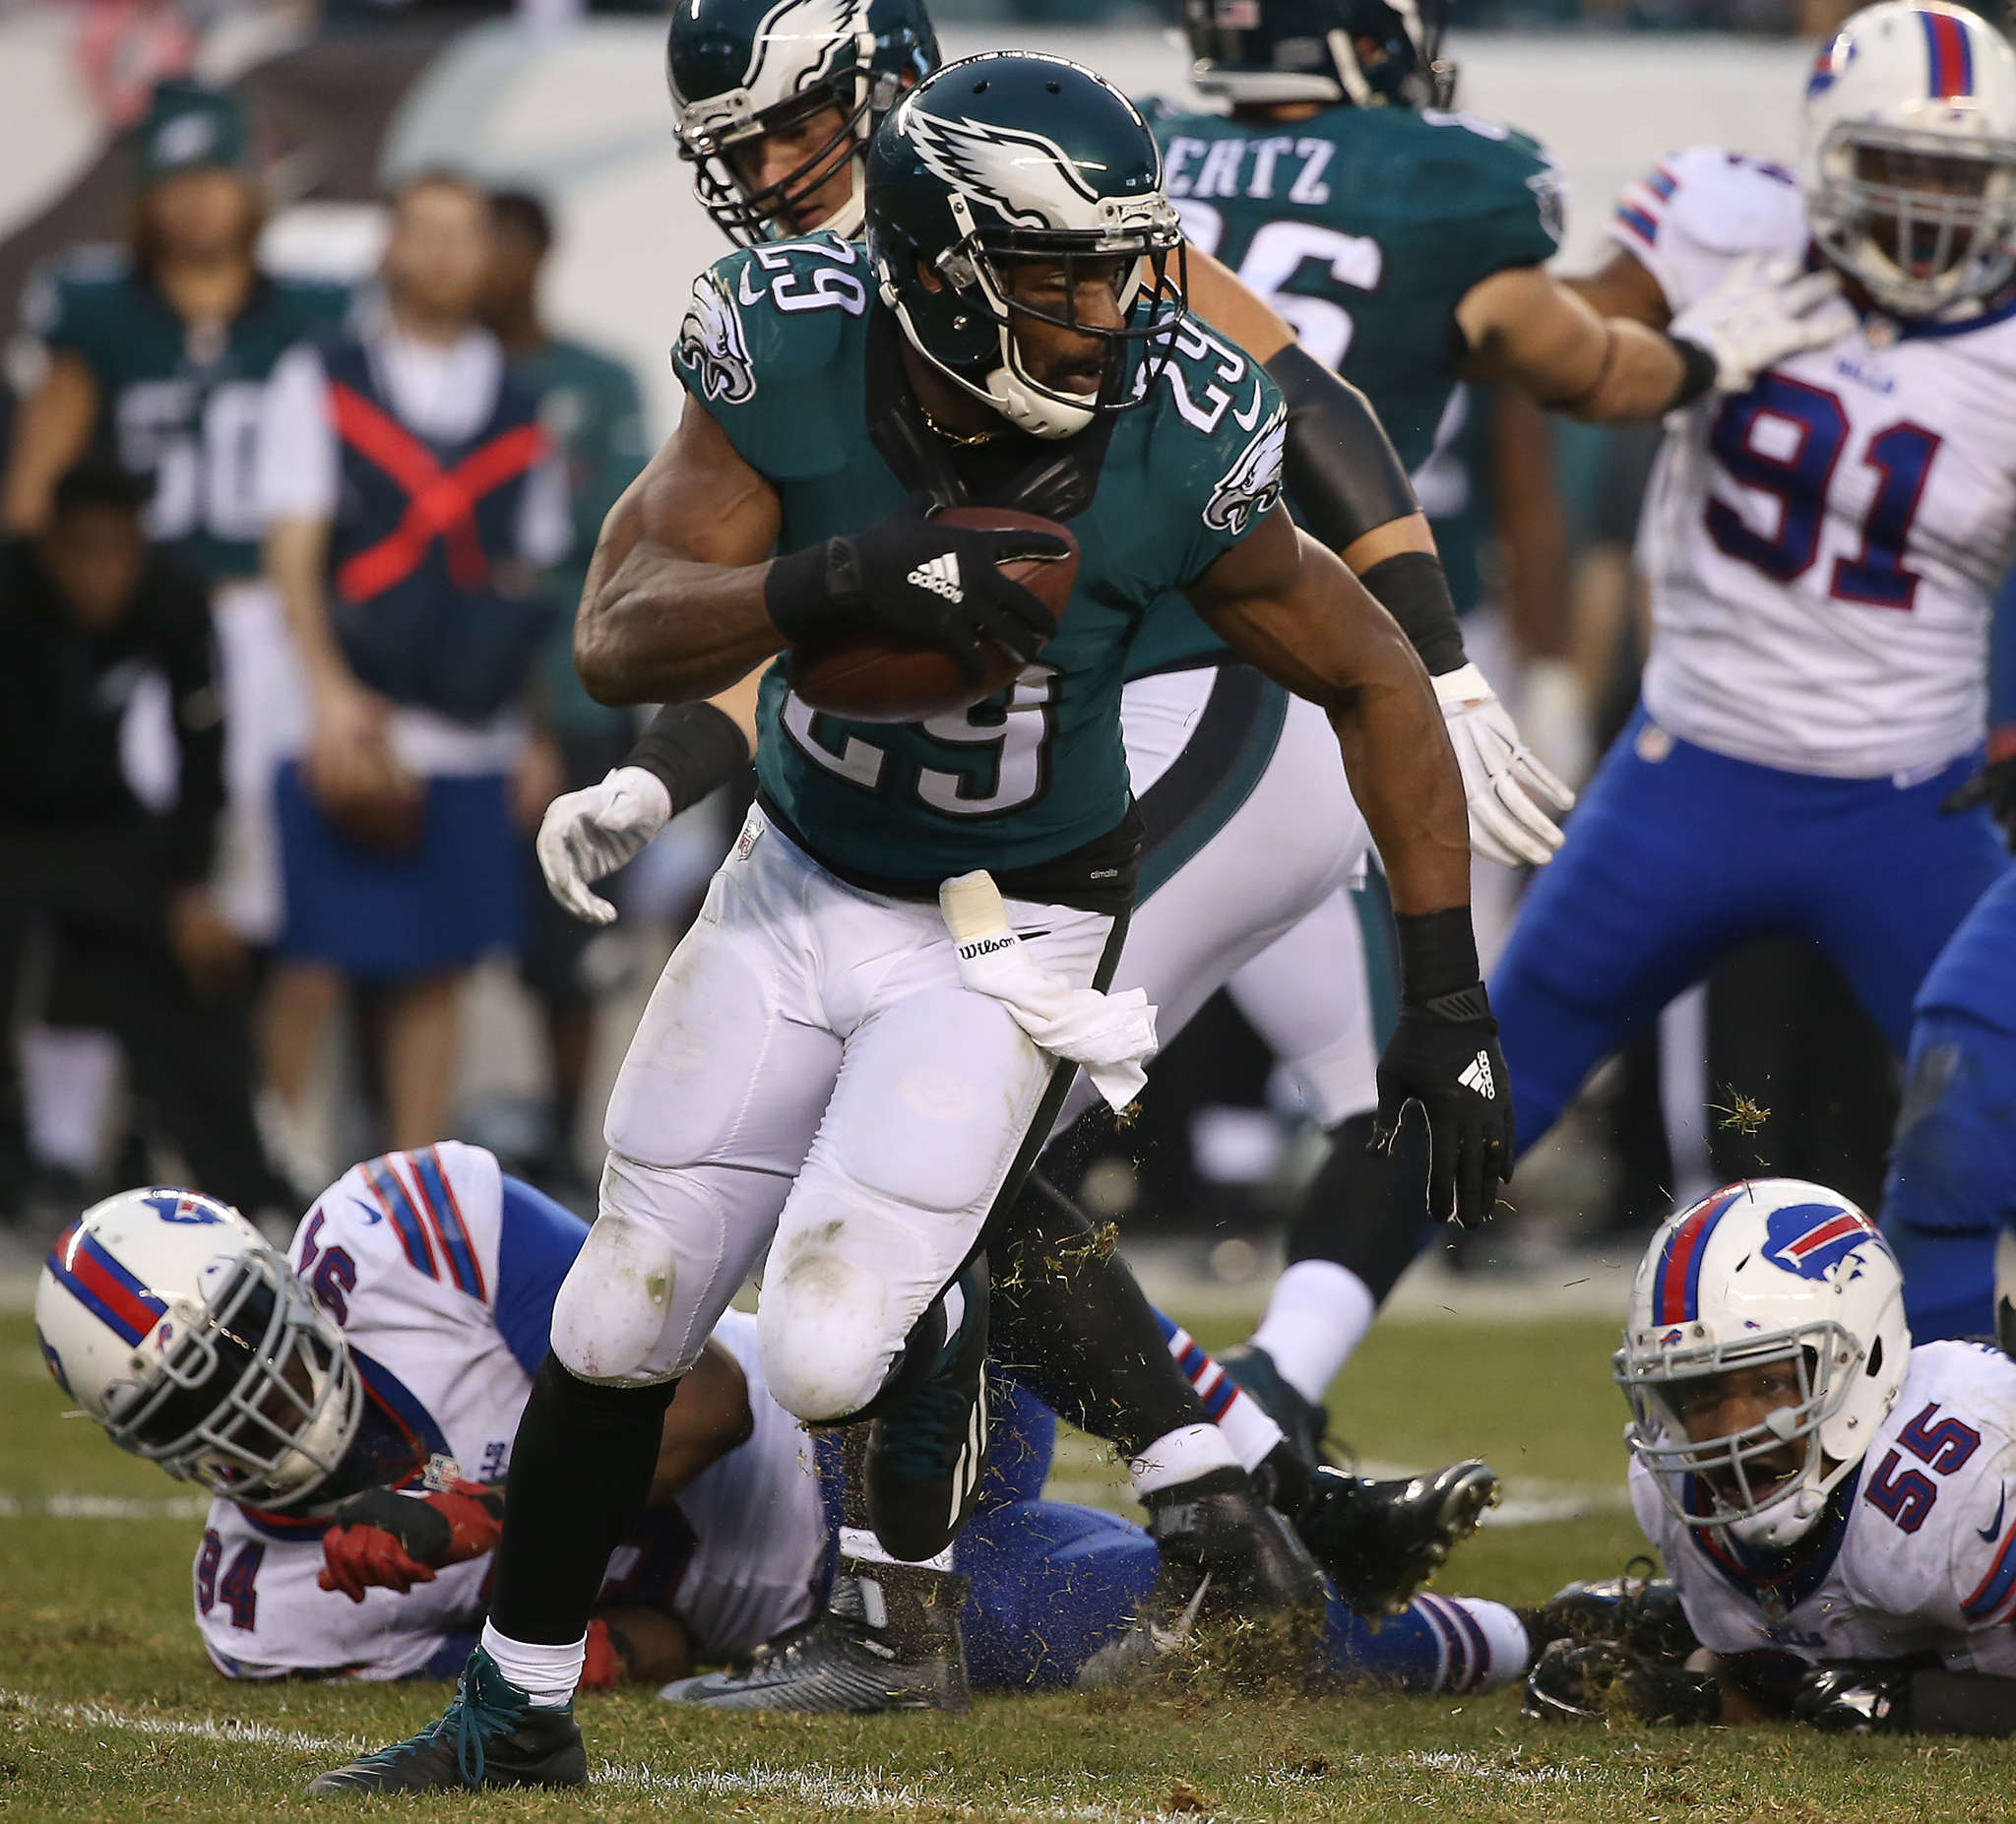 Eagles running back DeMarco Murray picked up just 34 yards on 11 carries Sunday.